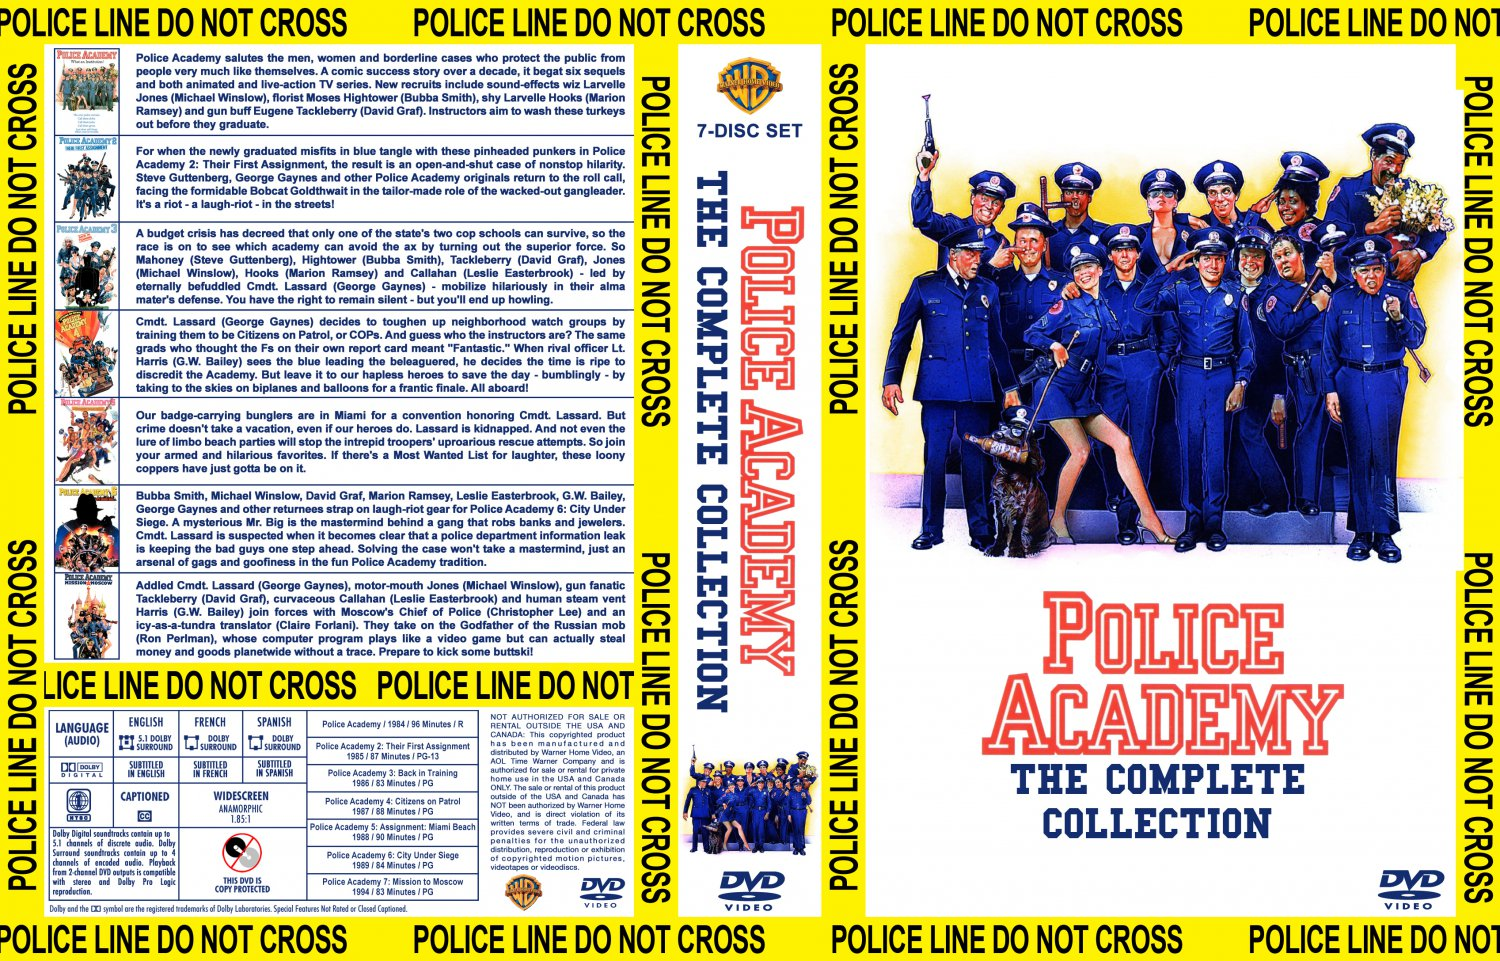 http://www.dvd-covers.org/d/320405-2/Police_Academy_Collection.jpg